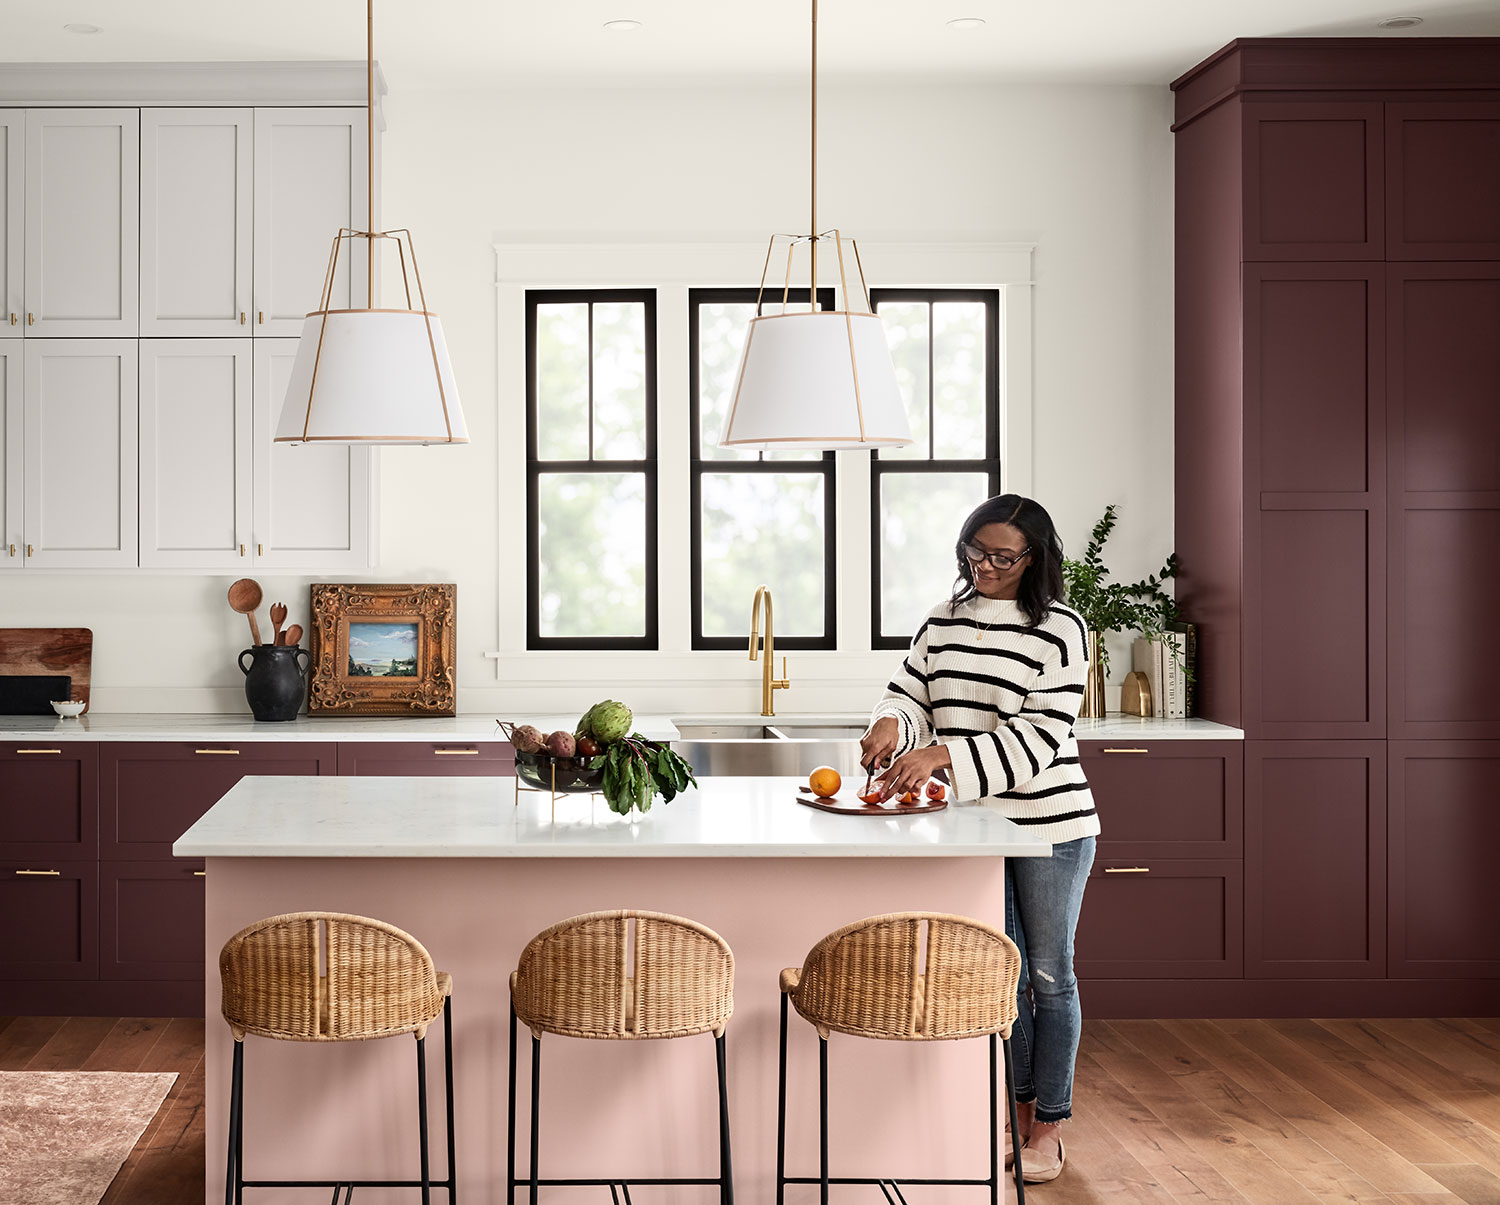 Woman cutting fruit in kitchen with cabinets painted Carnelian SW 7580 and kitchen island painted Pink Shadow SW 0070.